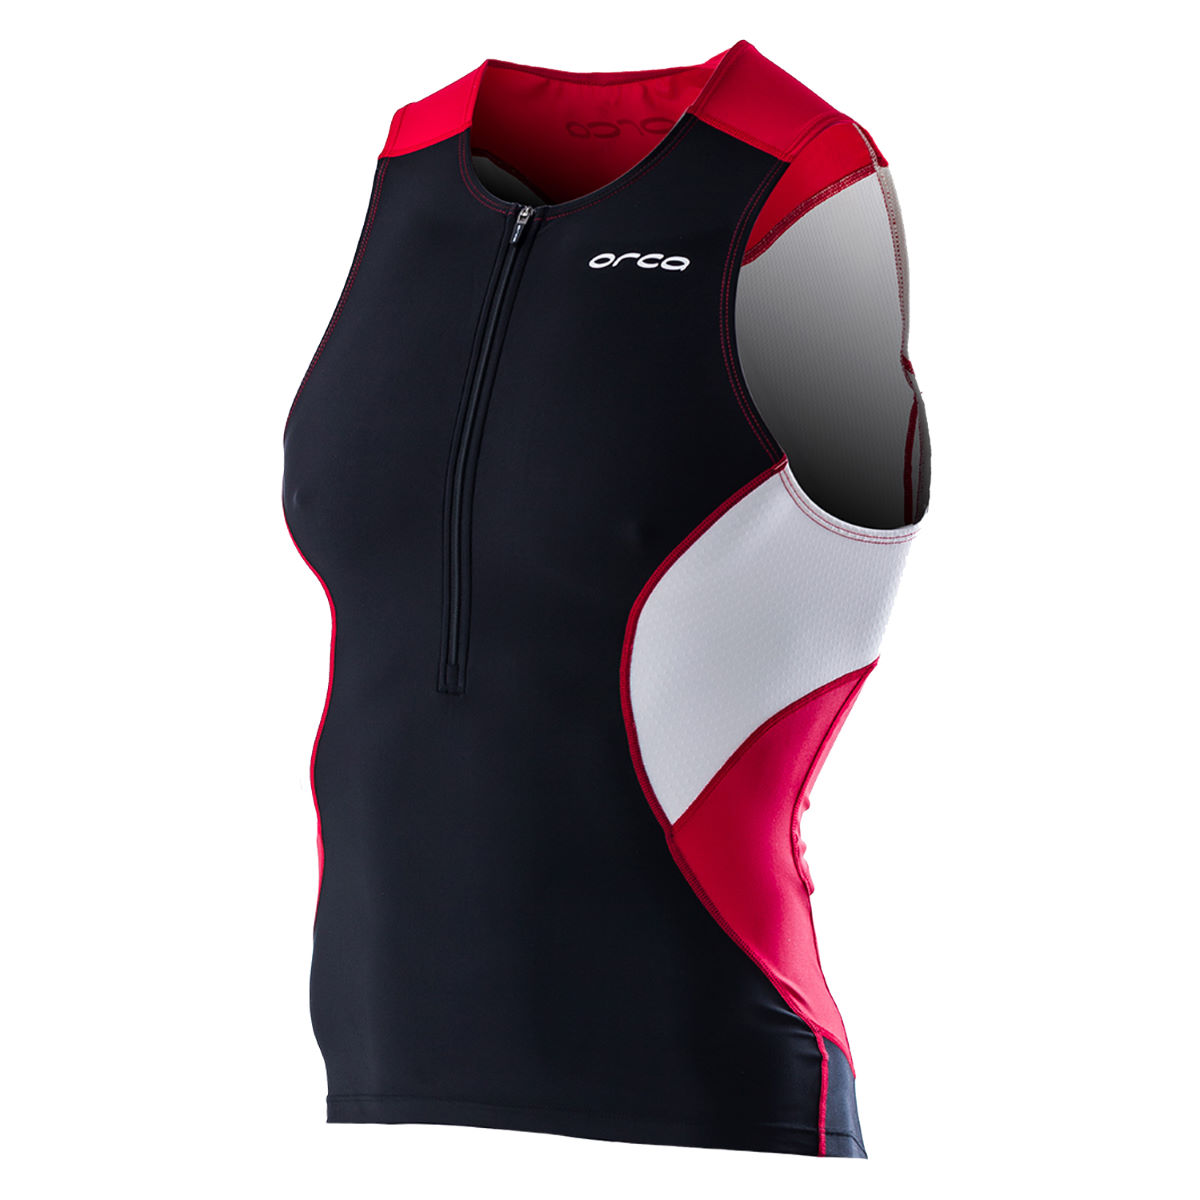 Débardeur de triathlon Orca Core - S Black/Poinsettia